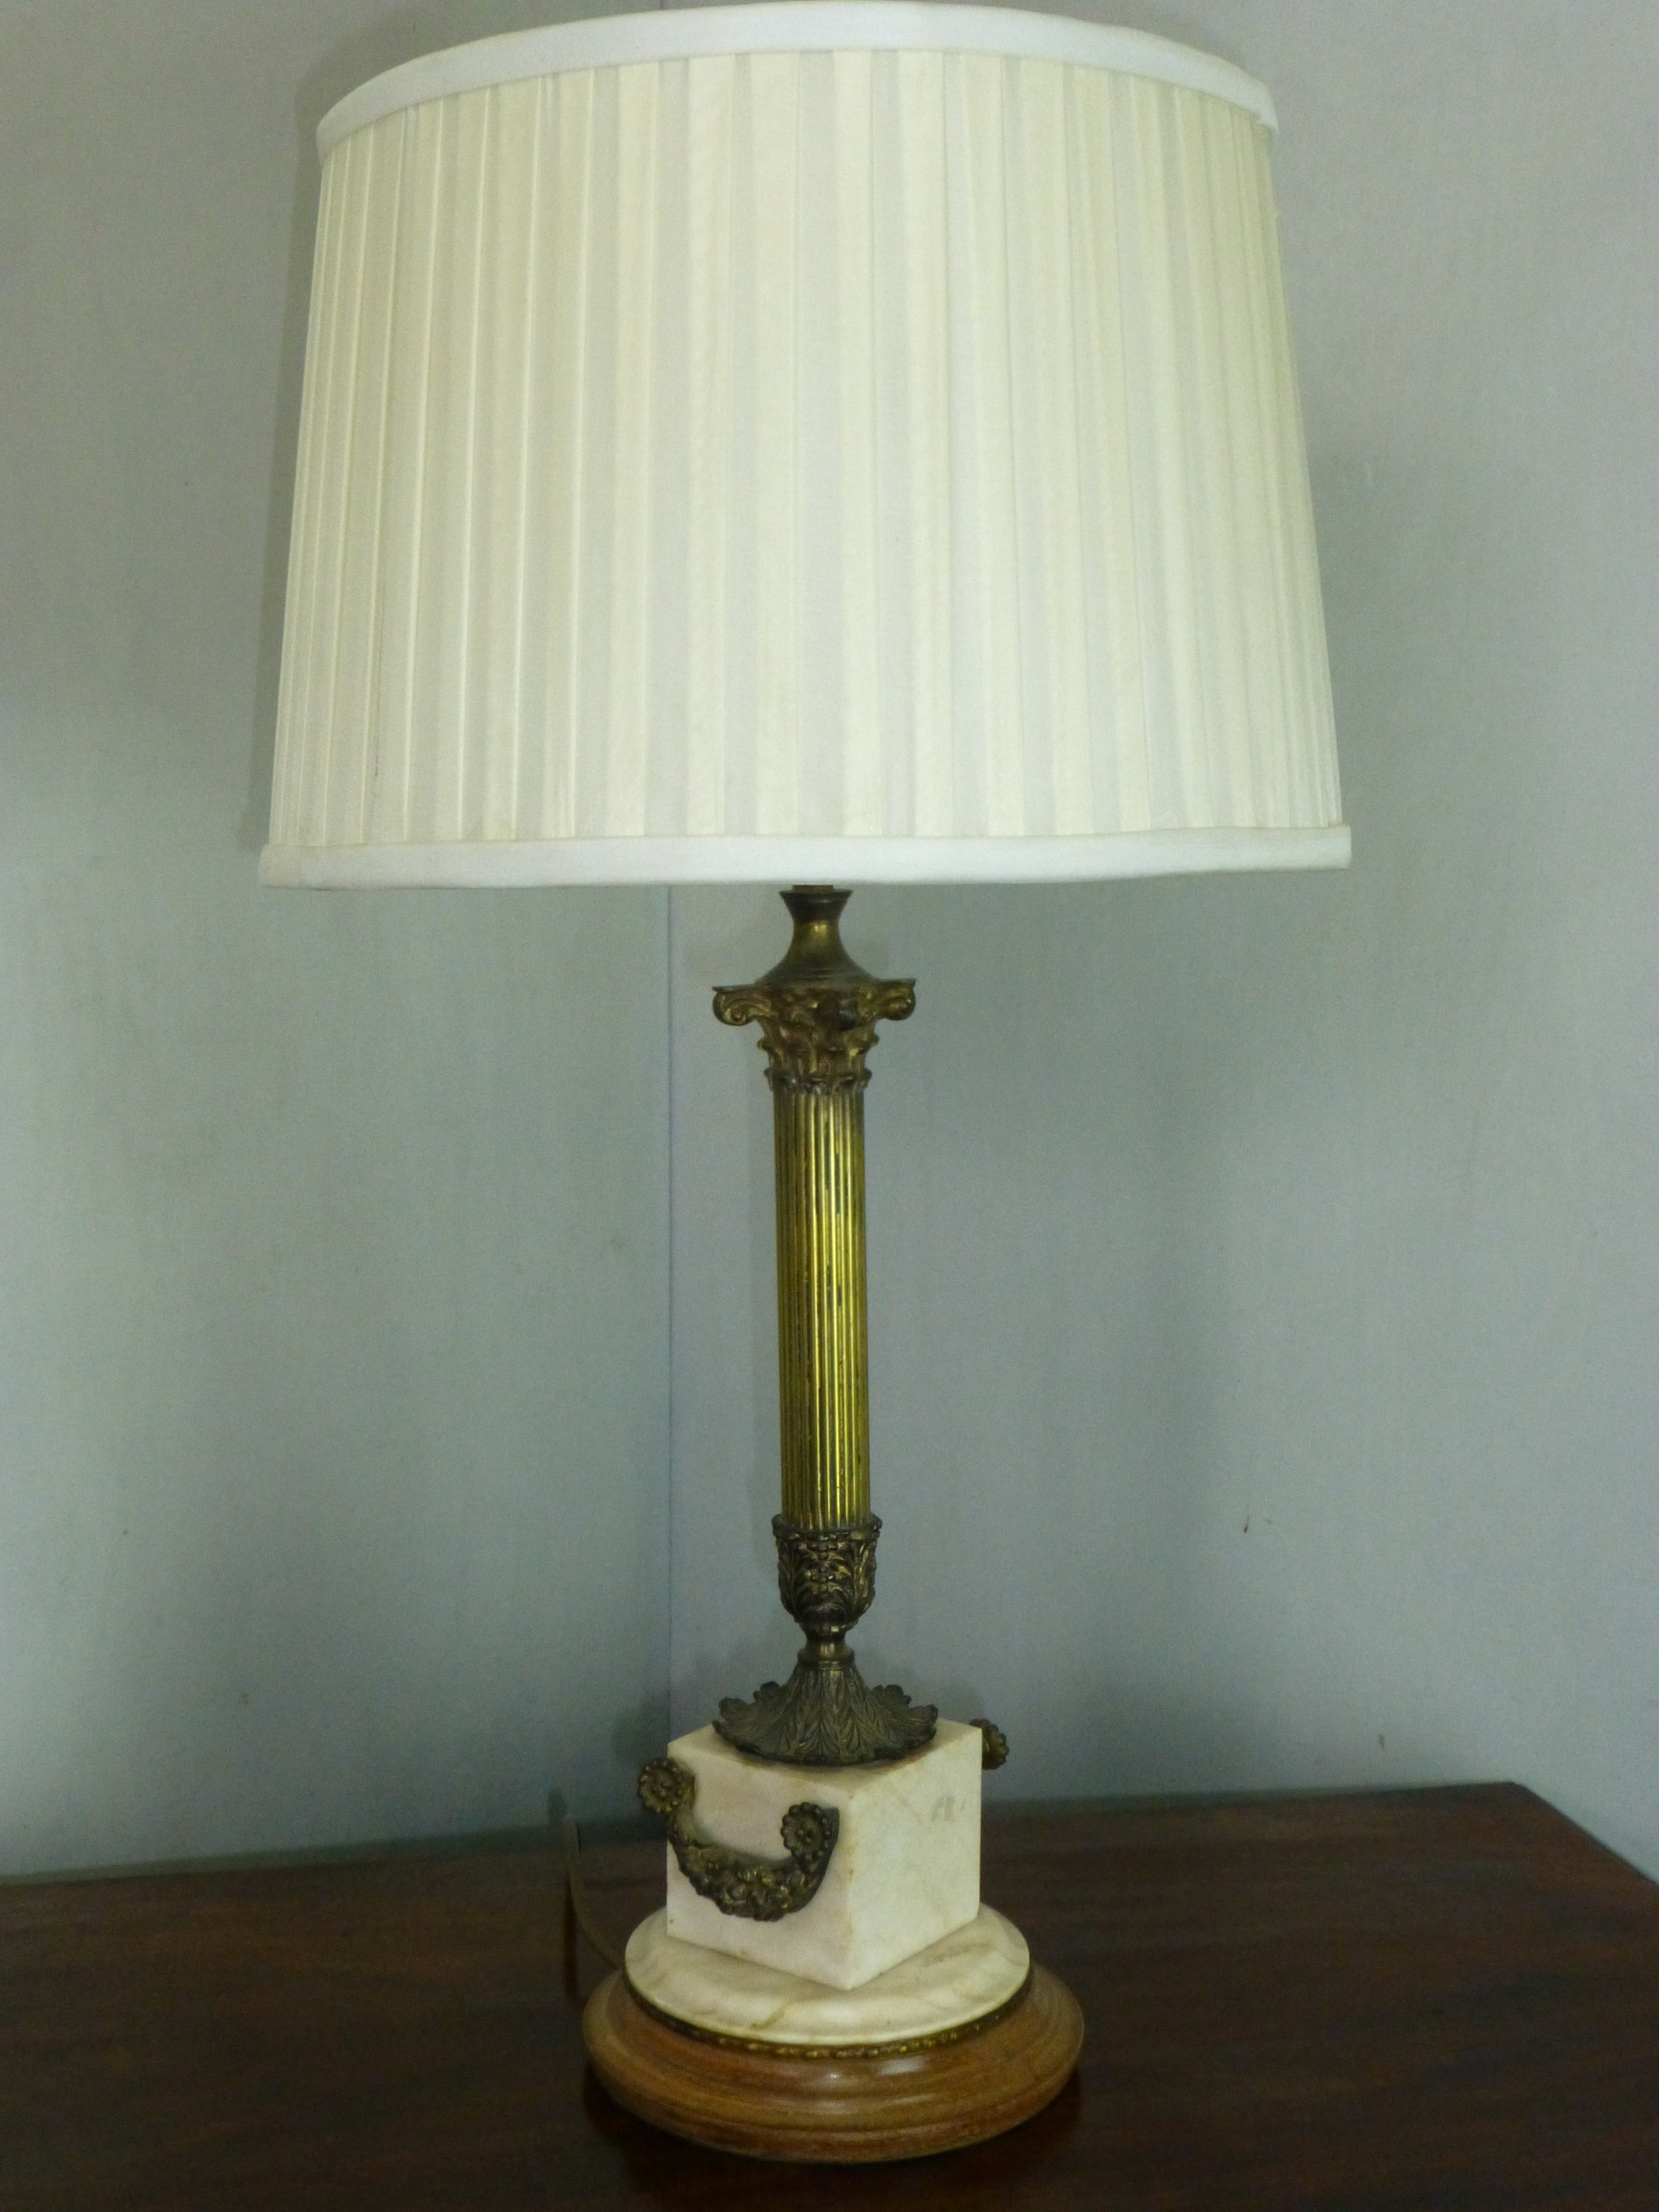 stunning early 2oth century marble and brass table lamp c 1910